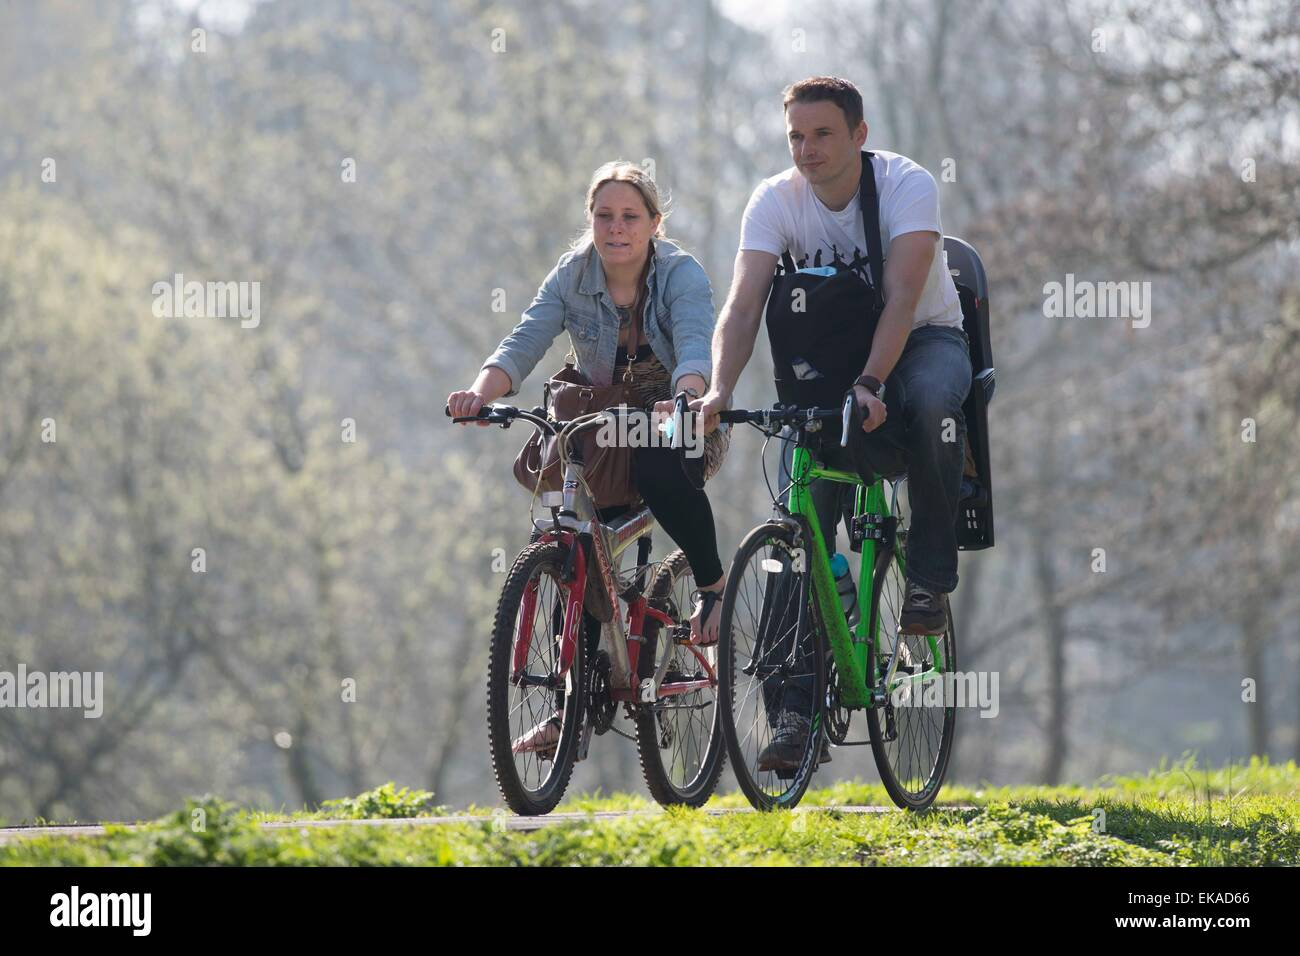 A couple ride their bikes on the Taff Trail in Cardiff, South Wales, during warm sunny weather. - Stock Image